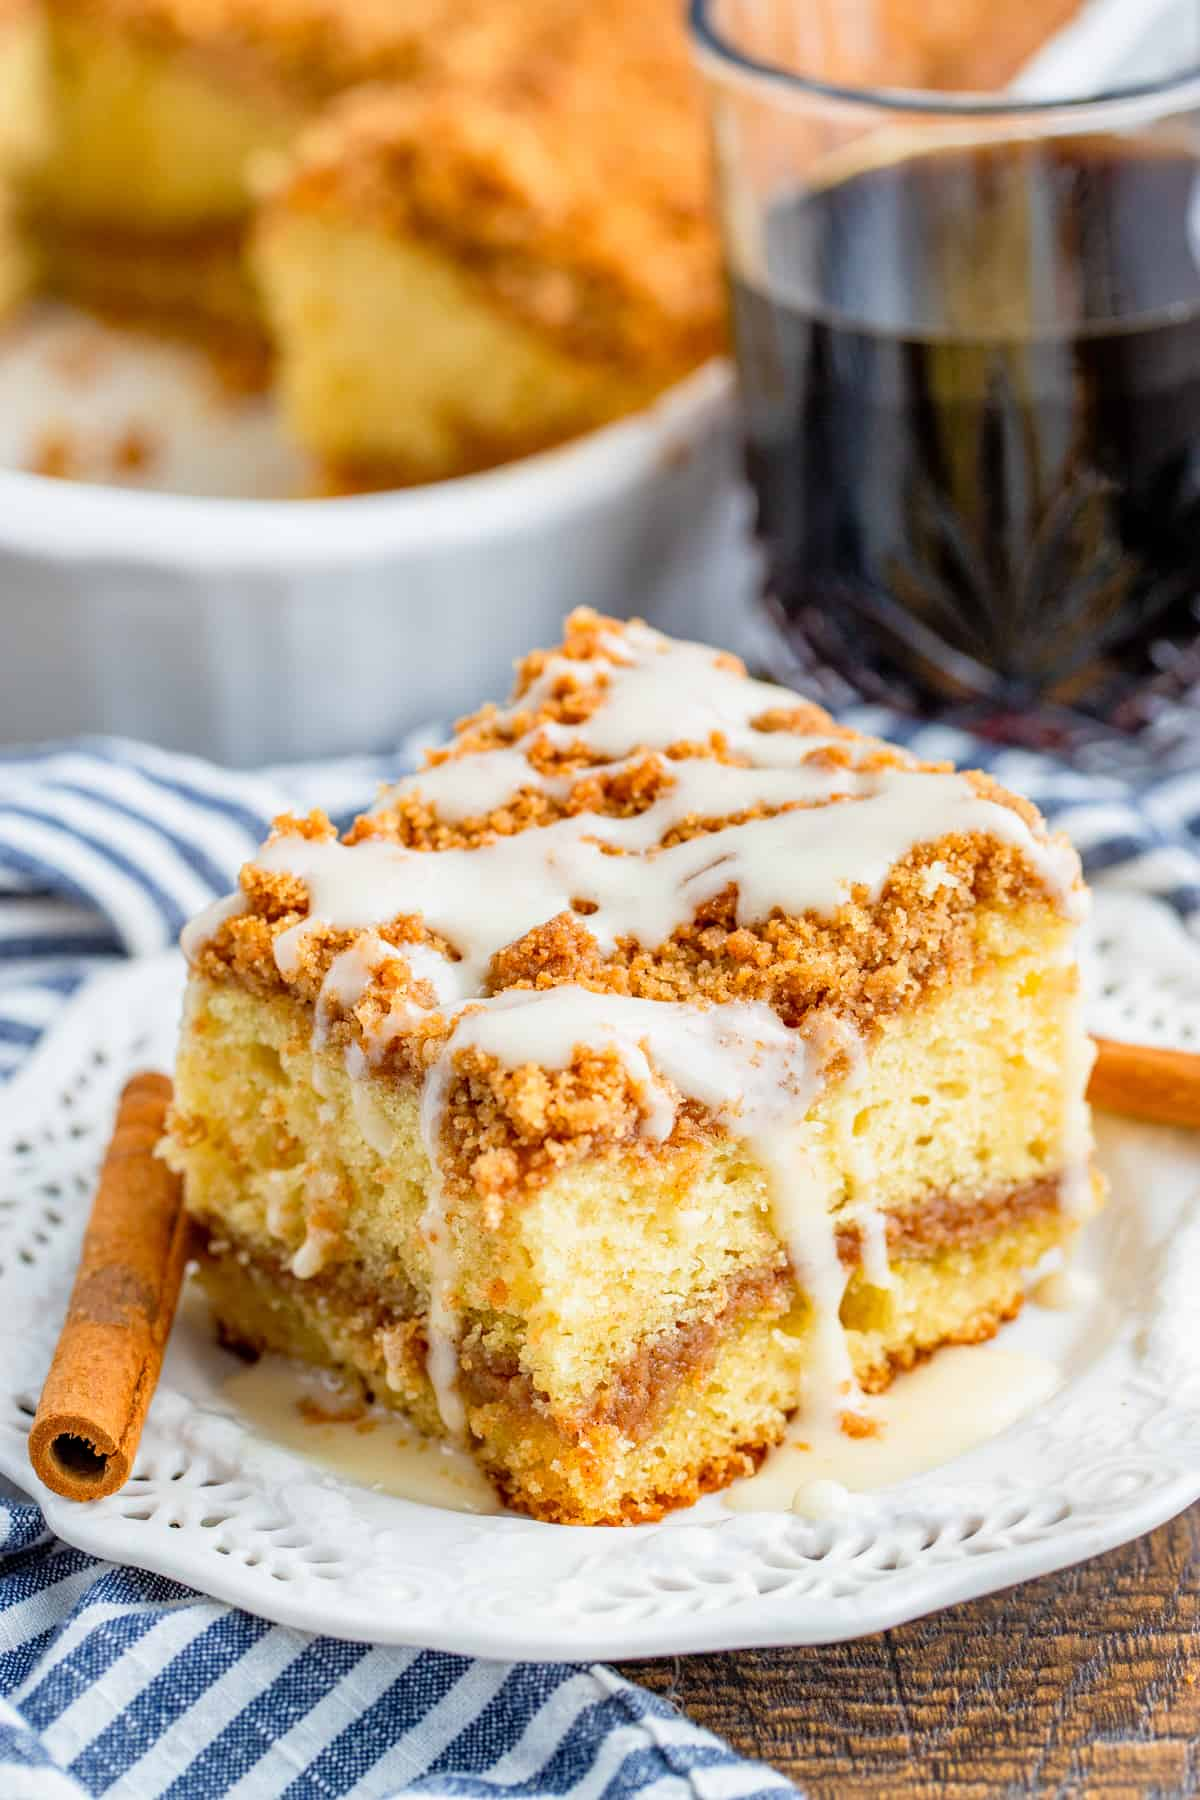 Slice of Sour Cream Coffee Cake on white plate with cinnamon